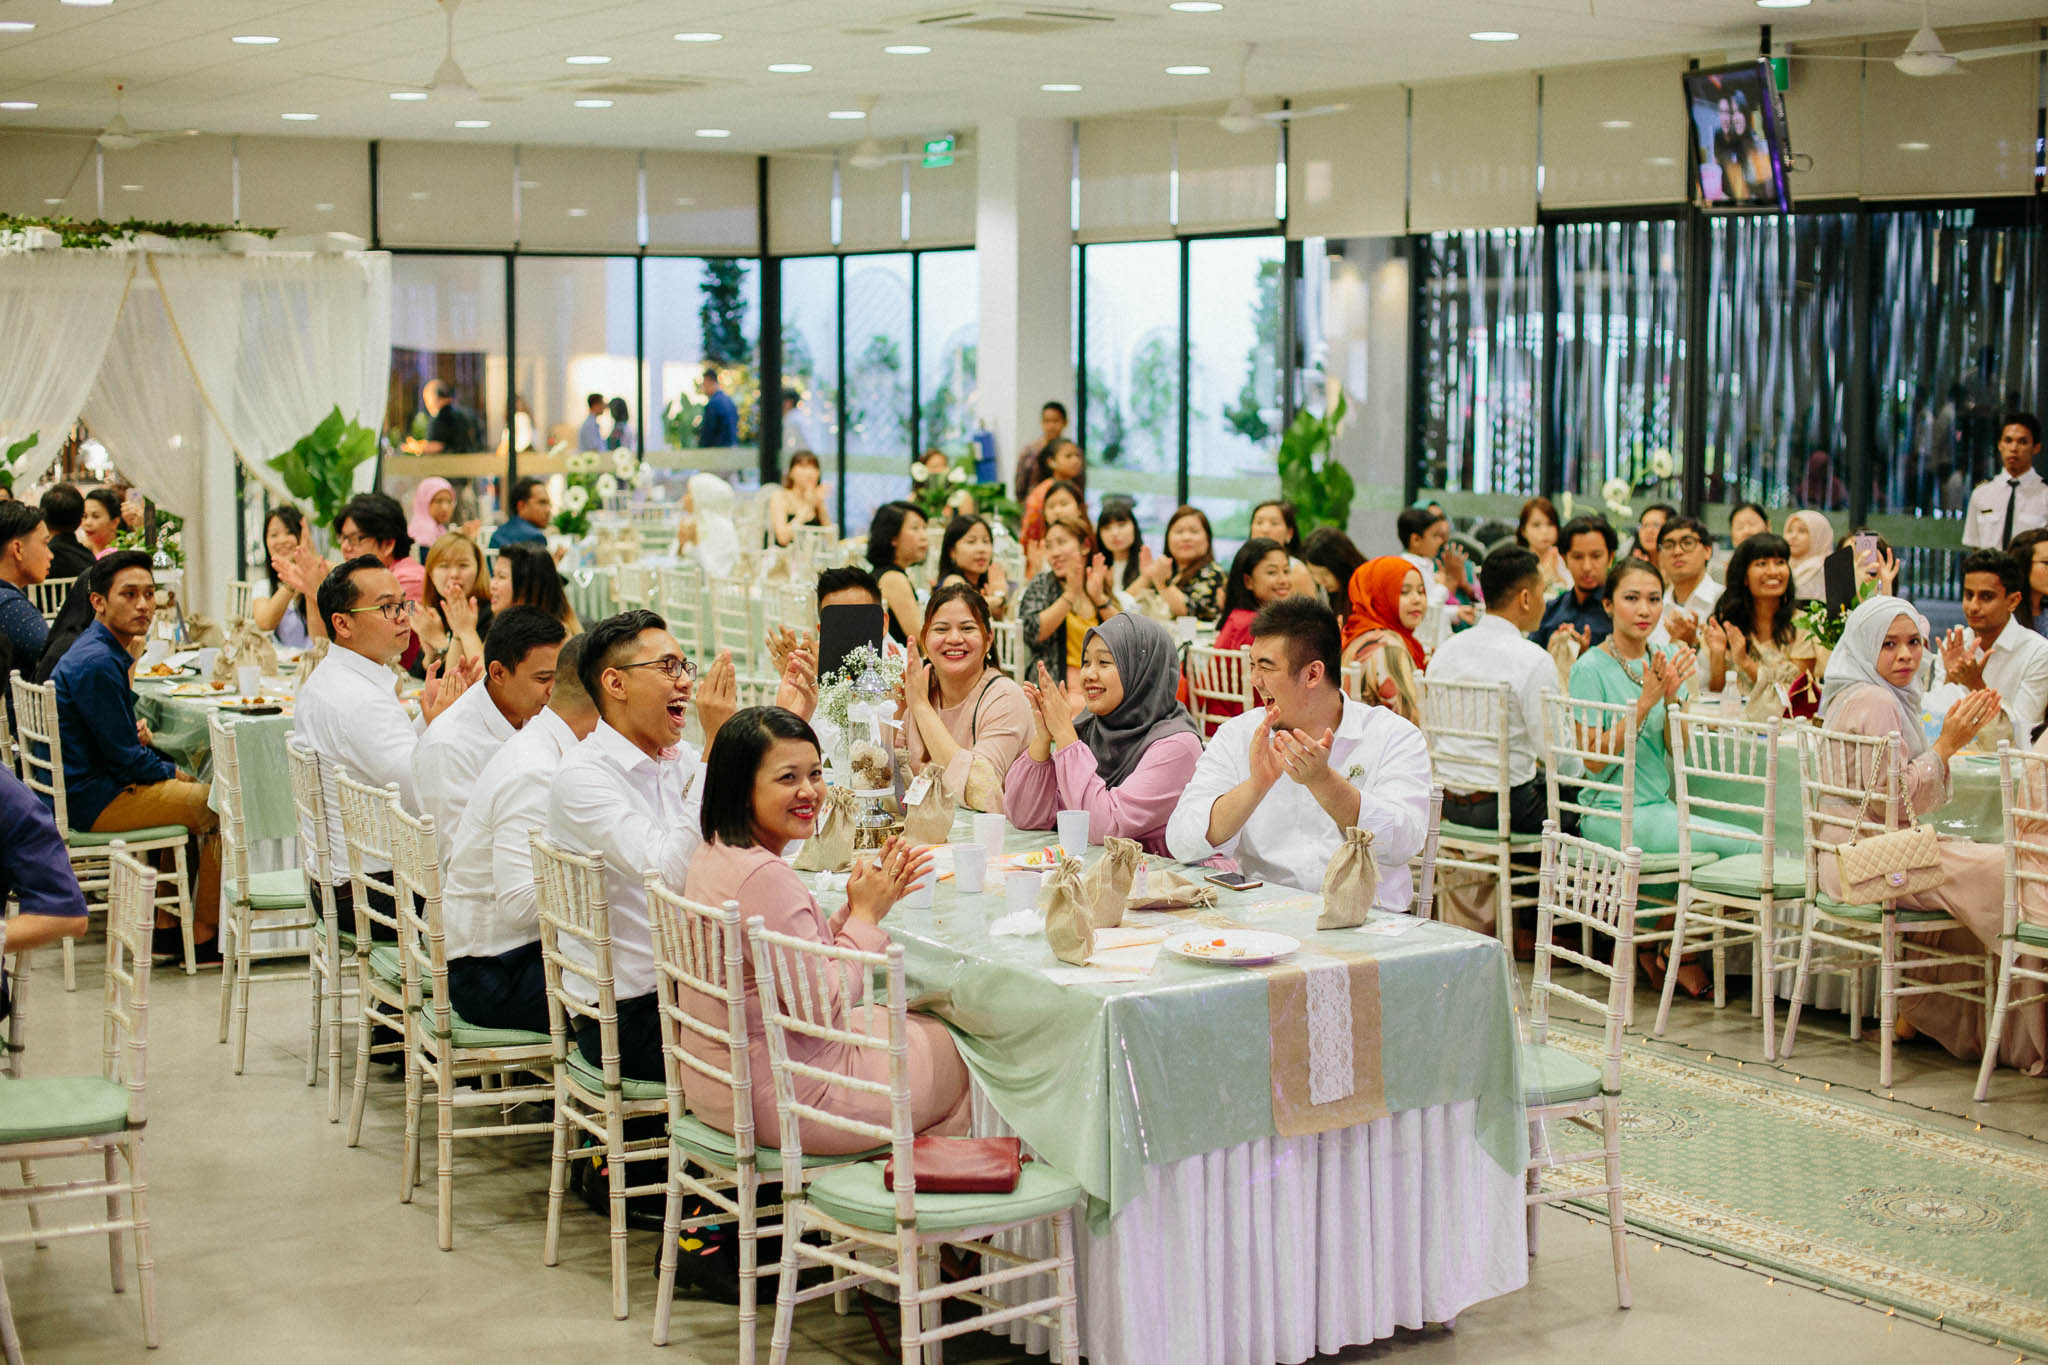 singapore-wedding-photographer-we-made-these-2016-selects-080.jpg